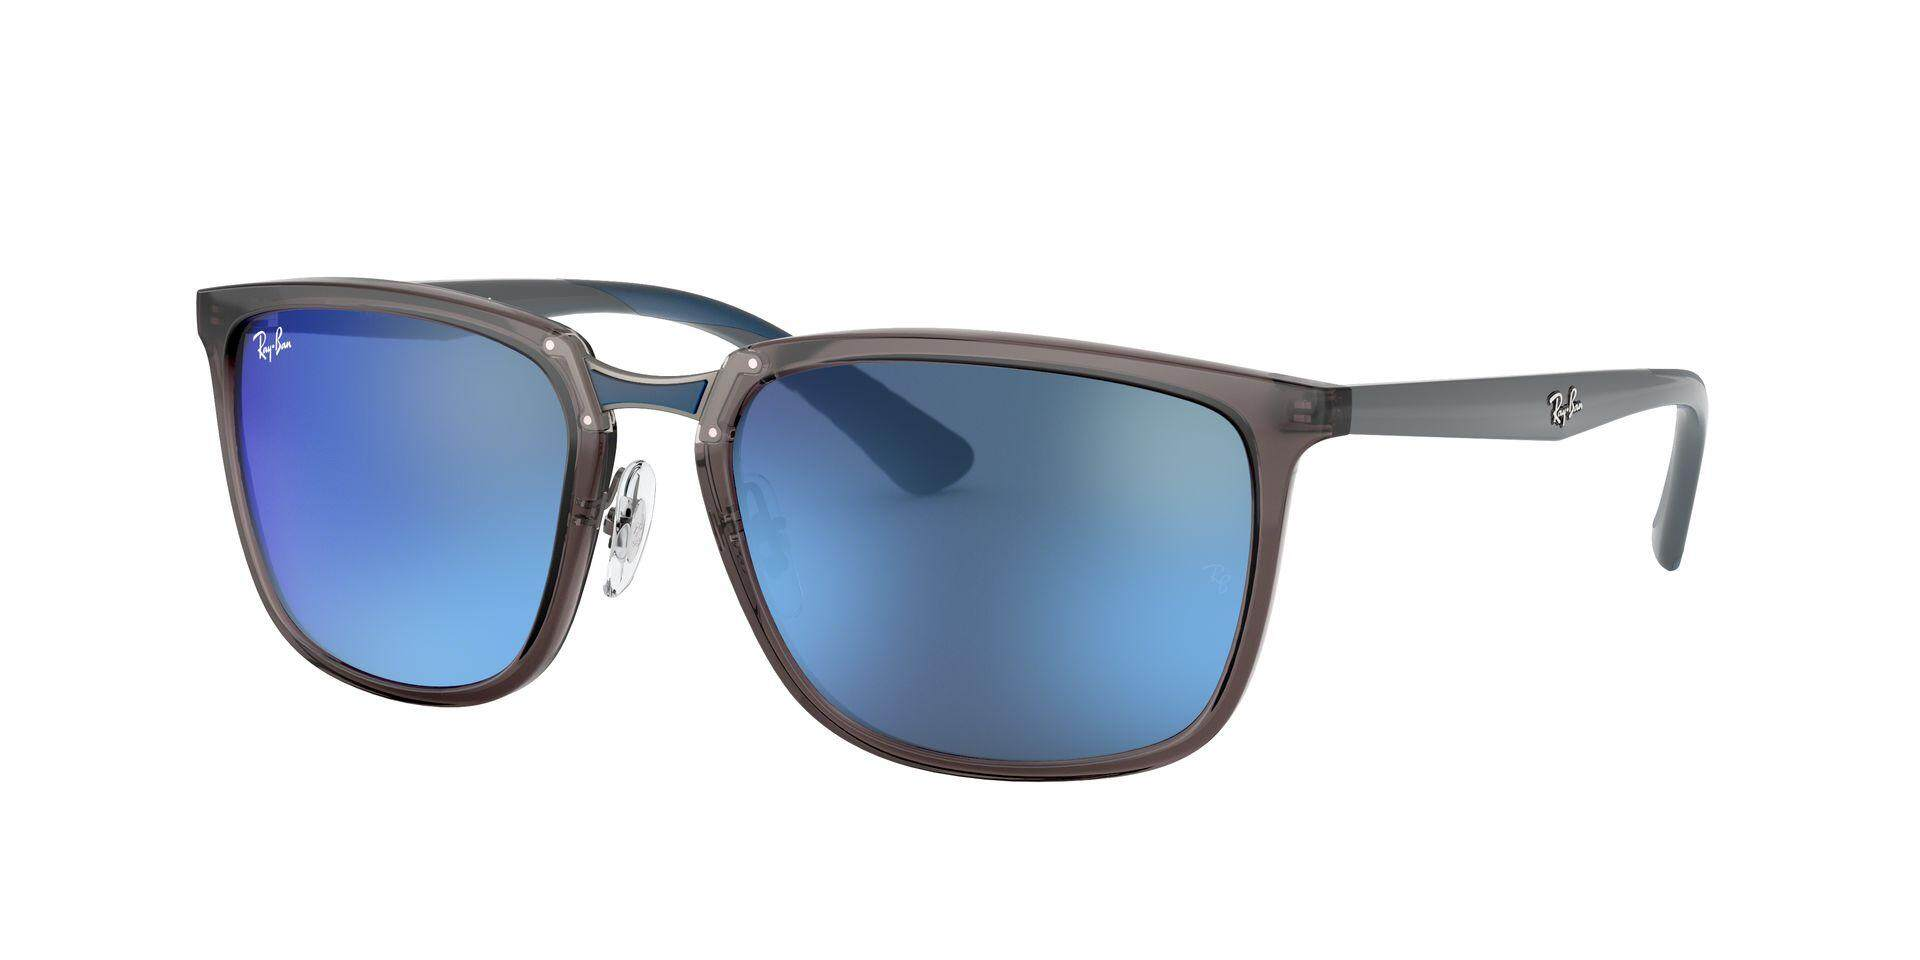 15a63c7c20f Ray-Ban Men Sunglasses price in Malaysia - Best Ray-Ban Men ...